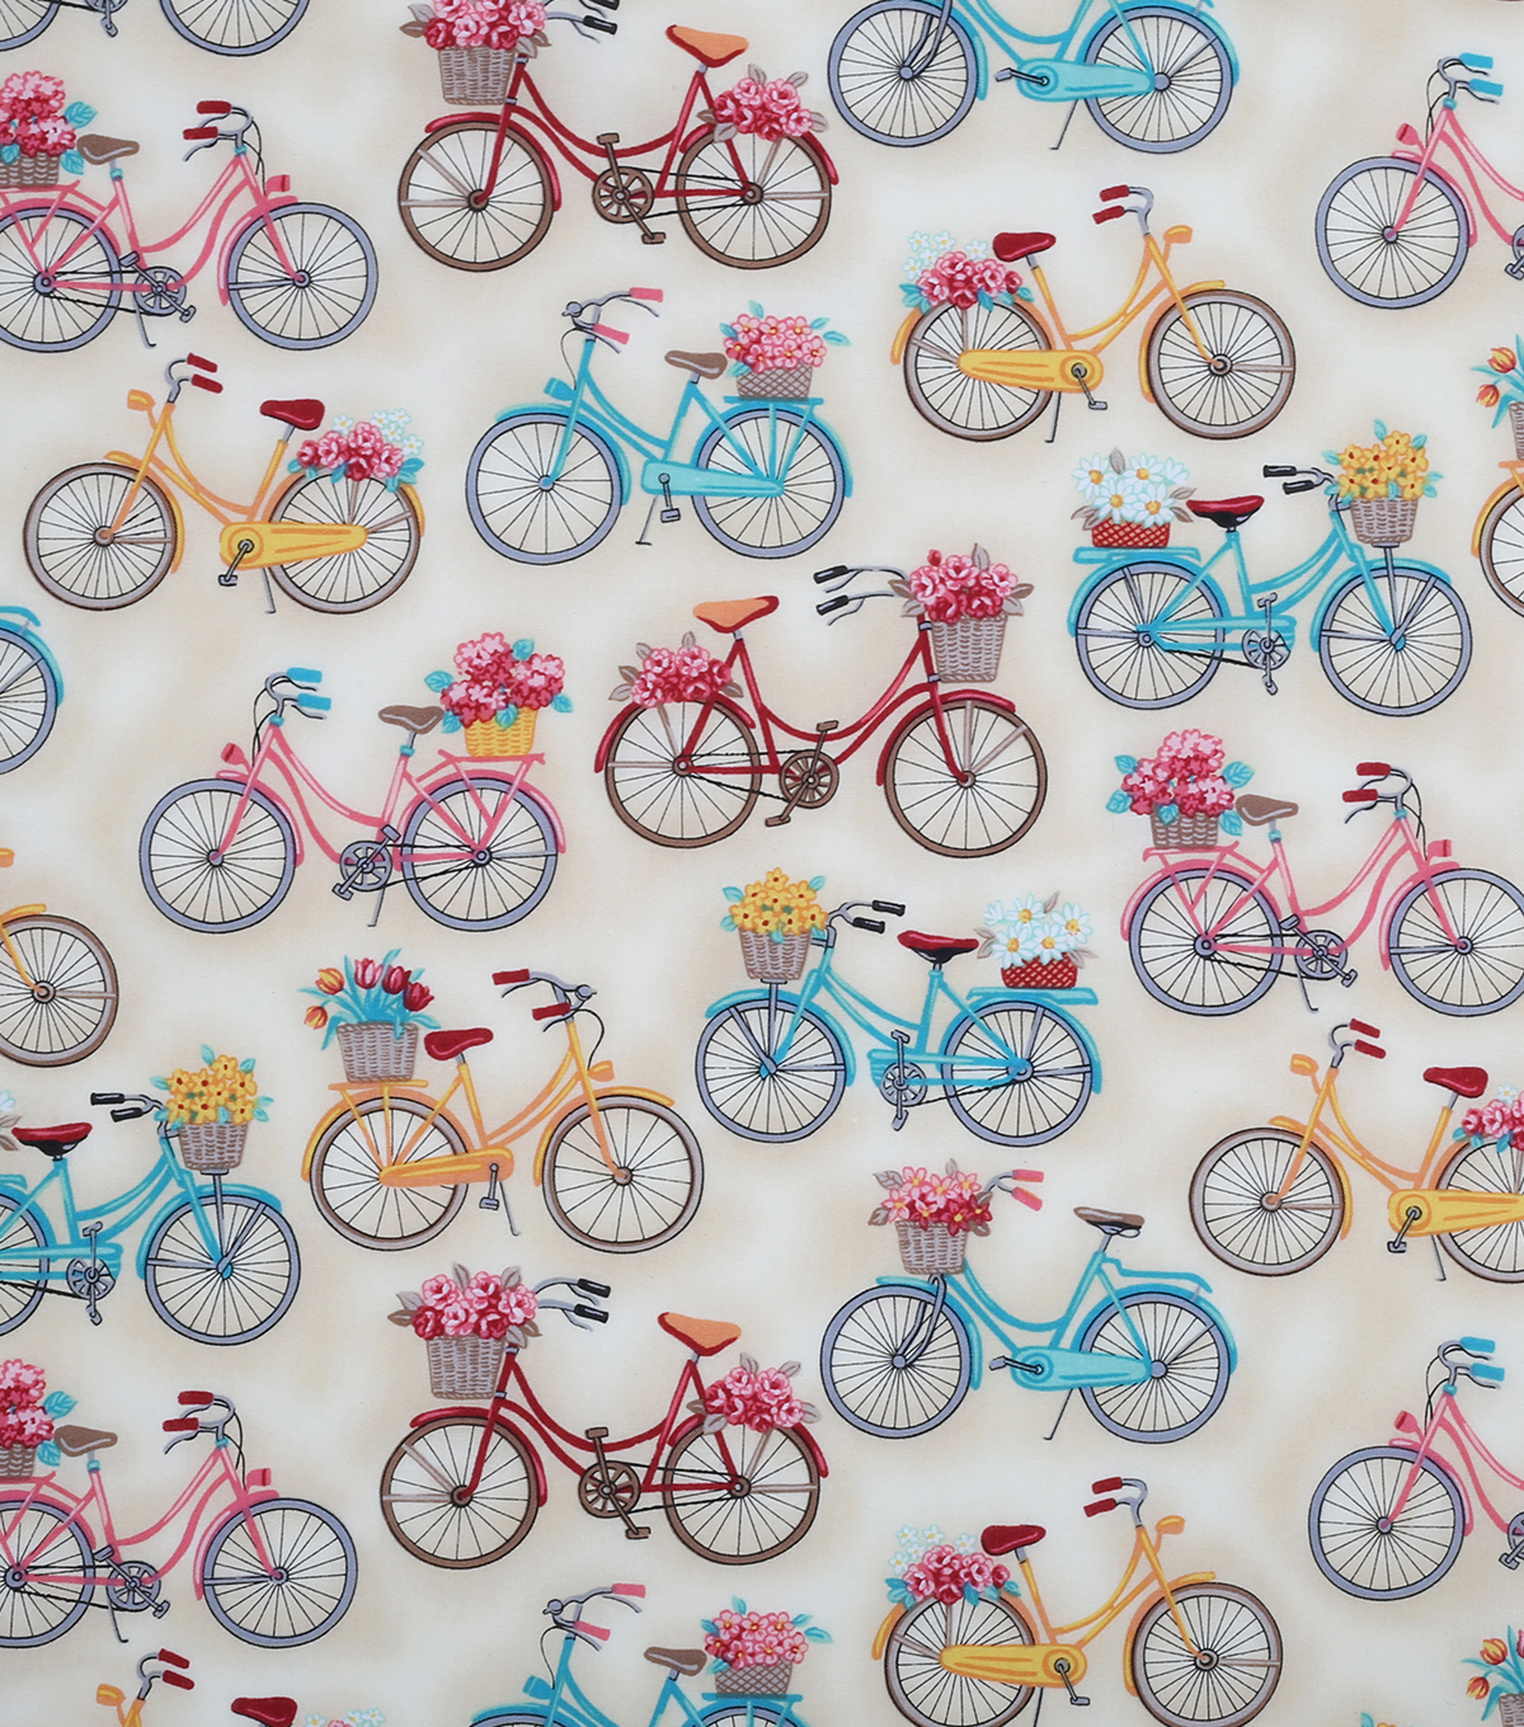 Novelty Quilt Fabric- Off White Bikes With Baskets | JOANN : joann quilting fabric - Adamdwight.com